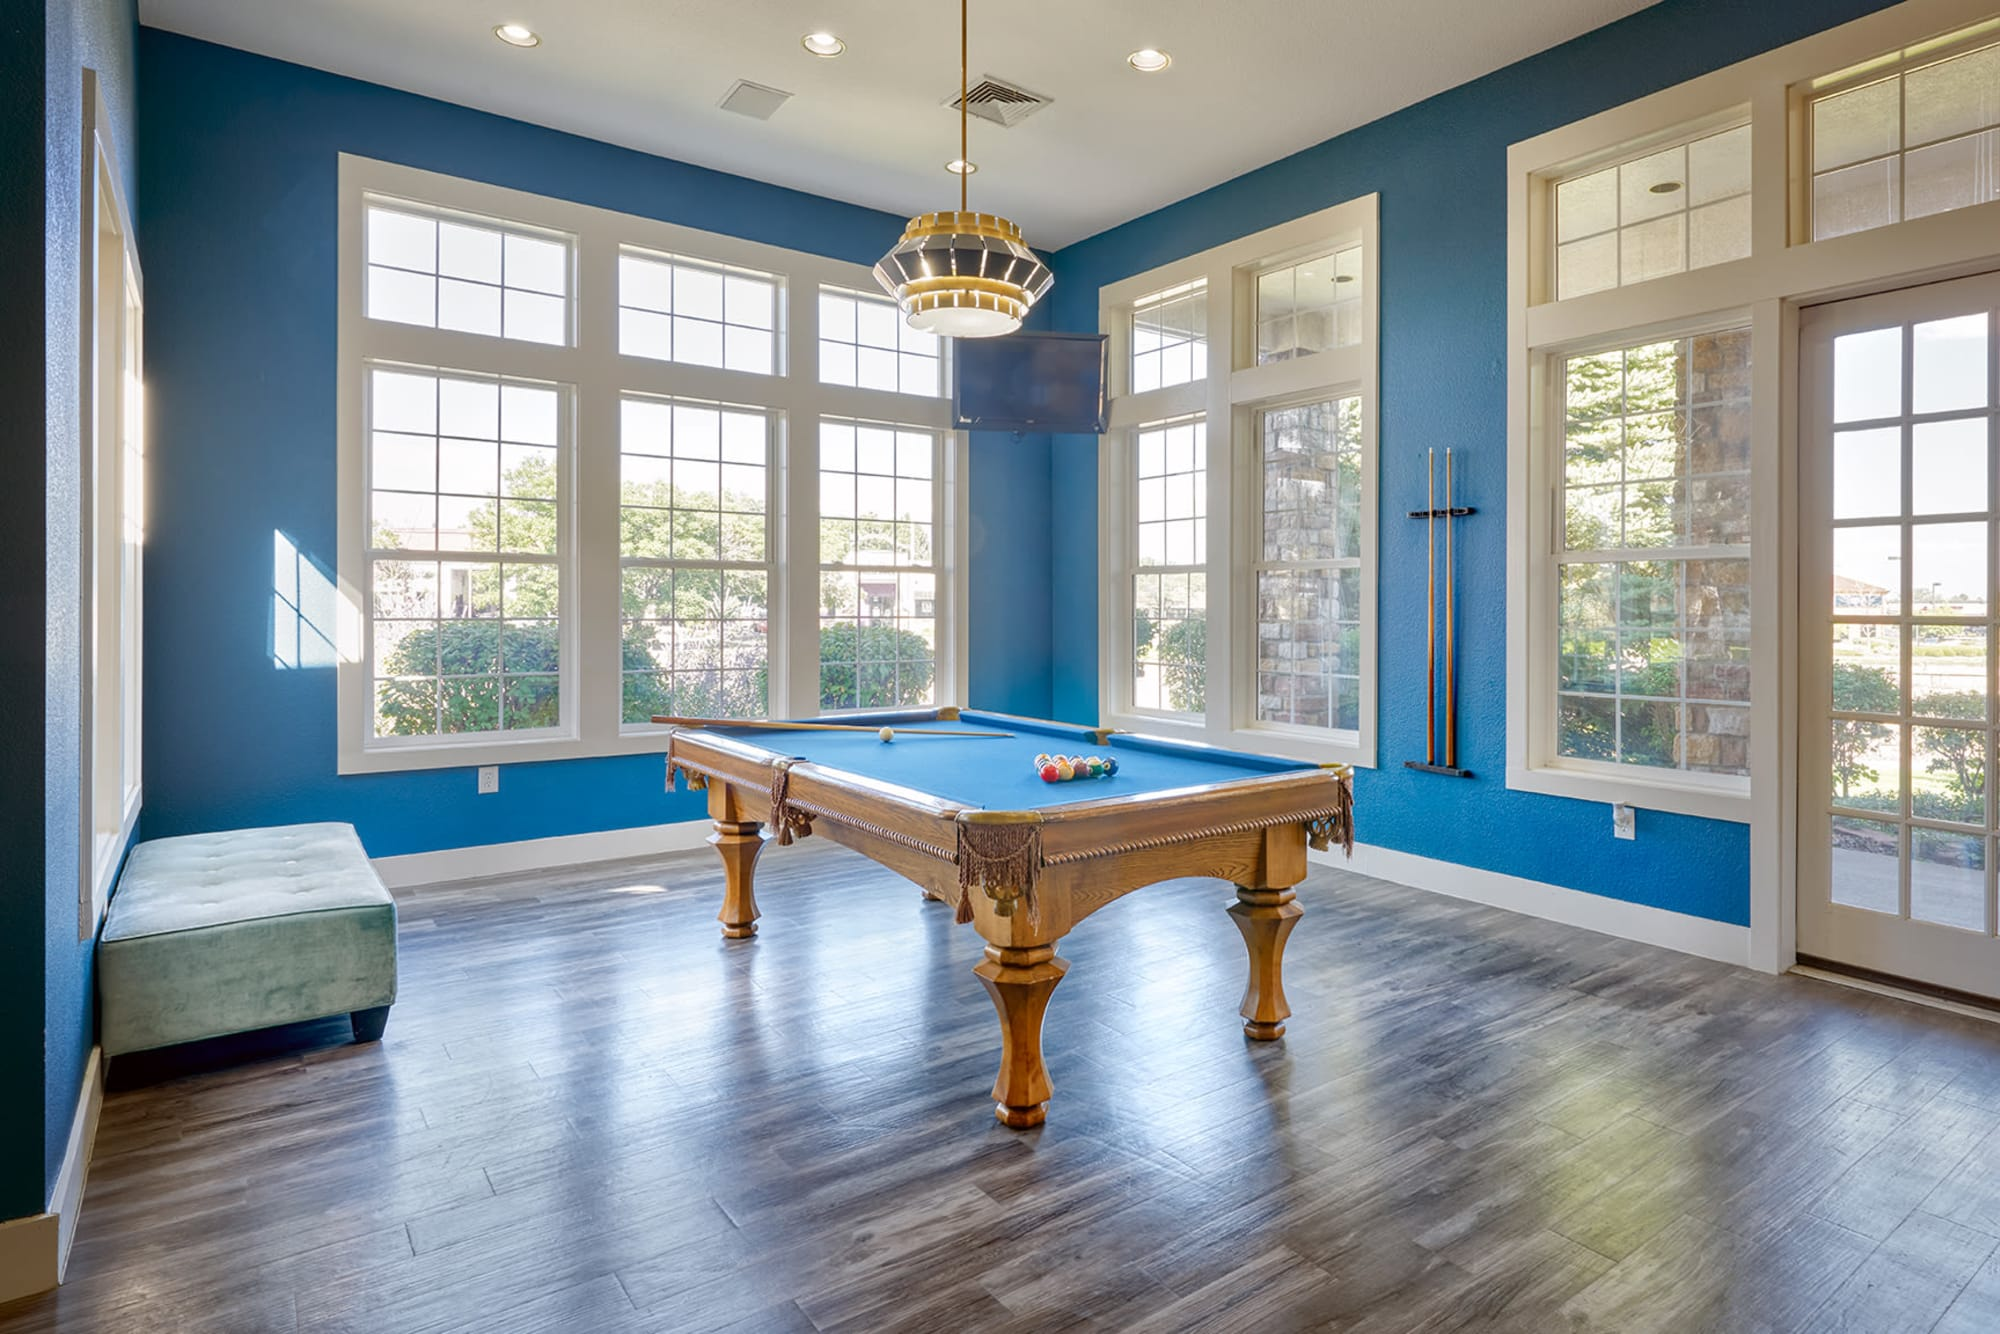 The clubhouse pool table on hardwood floors at Crestone Apartments in Aurora, Colorado